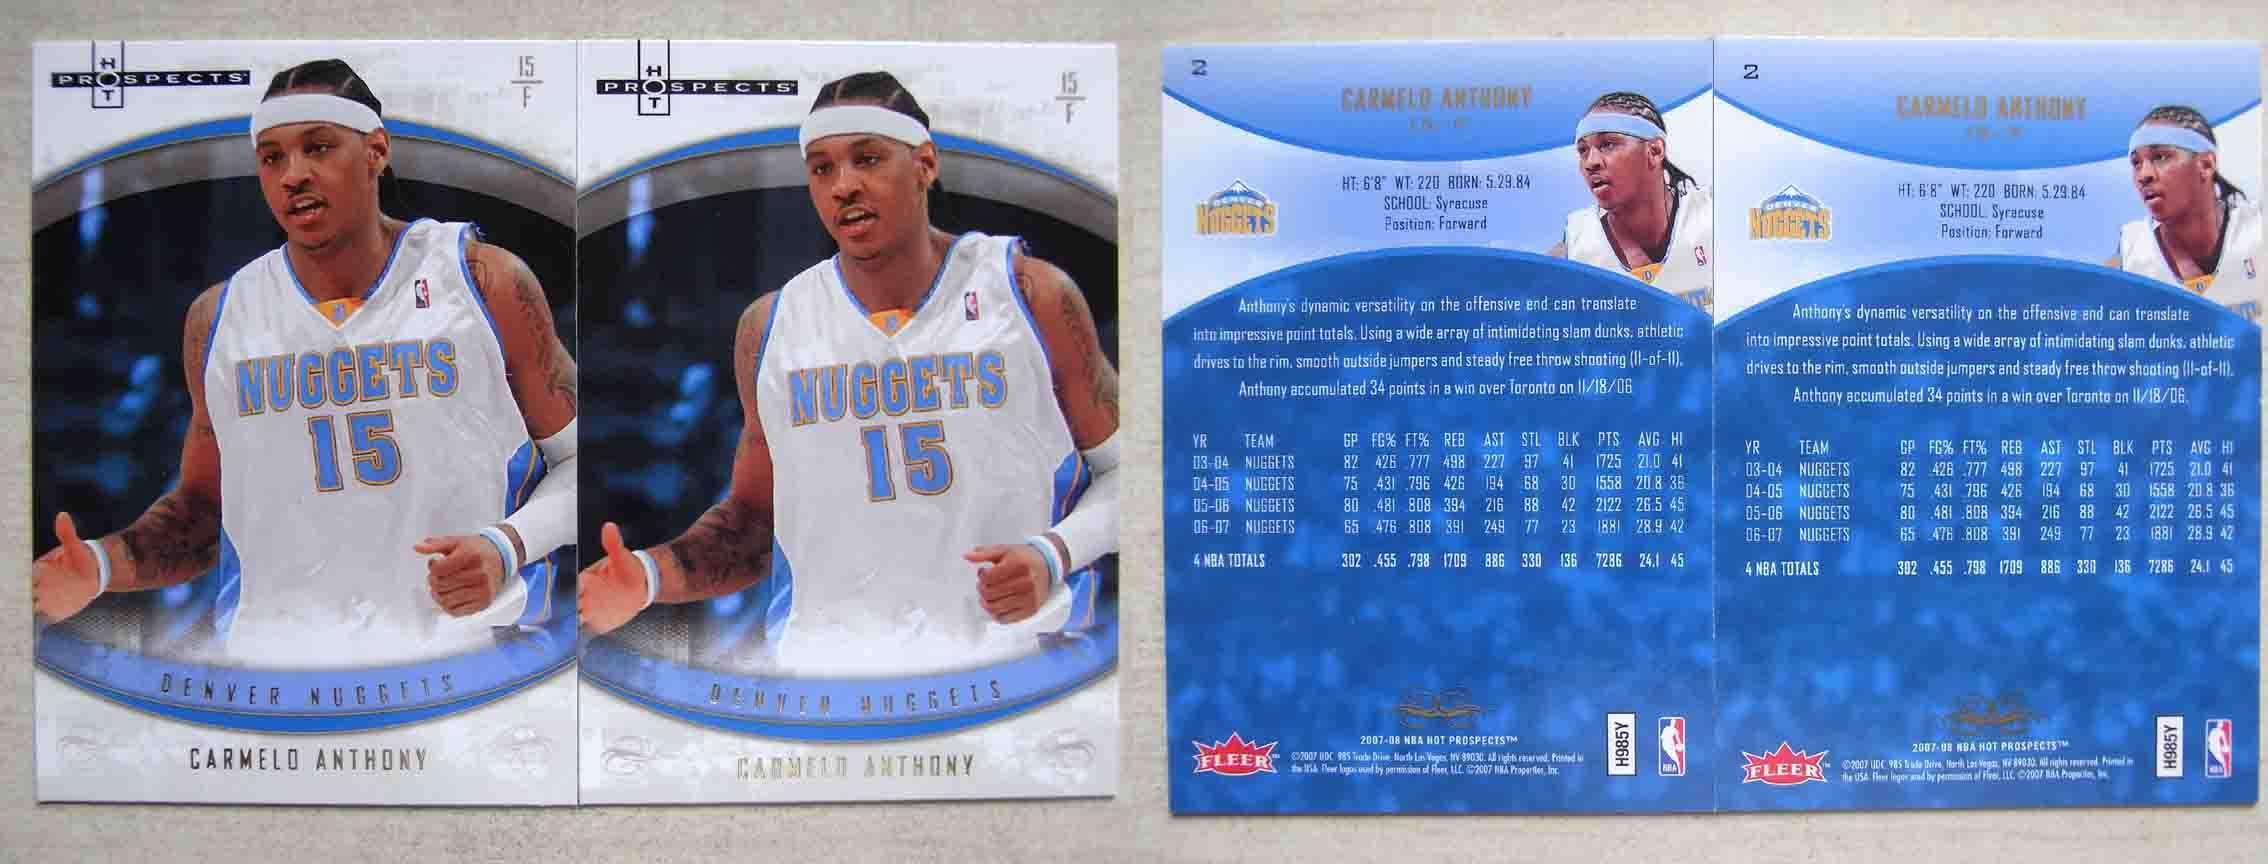 Фанатская атрибутика OTHER CARMELO ANTHONY 07 FLEER HOT PROSPECTS OTHER / Other